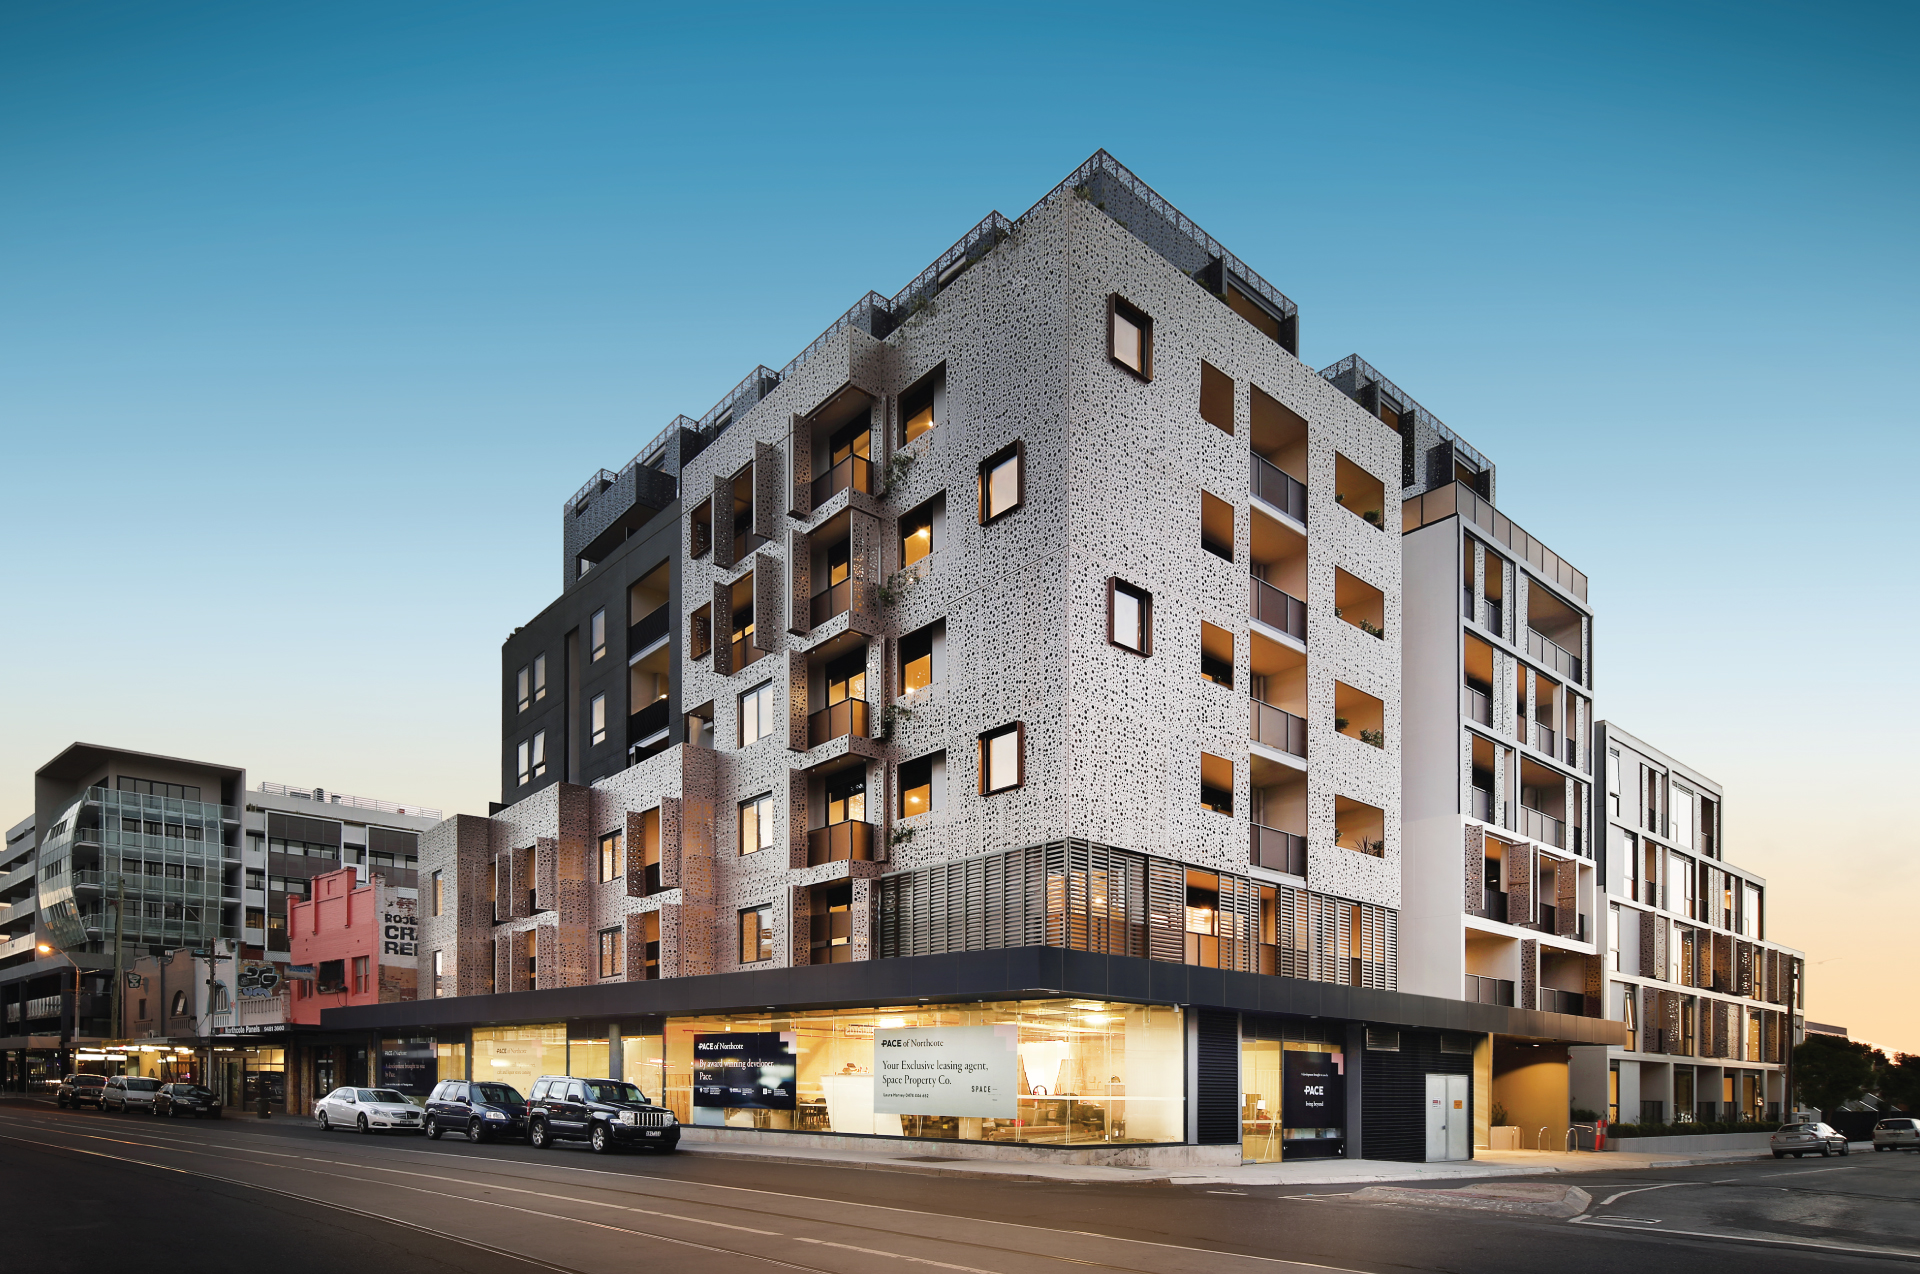 Cera Stribley Architecture Interior Design Pace of Northcote exterior street view